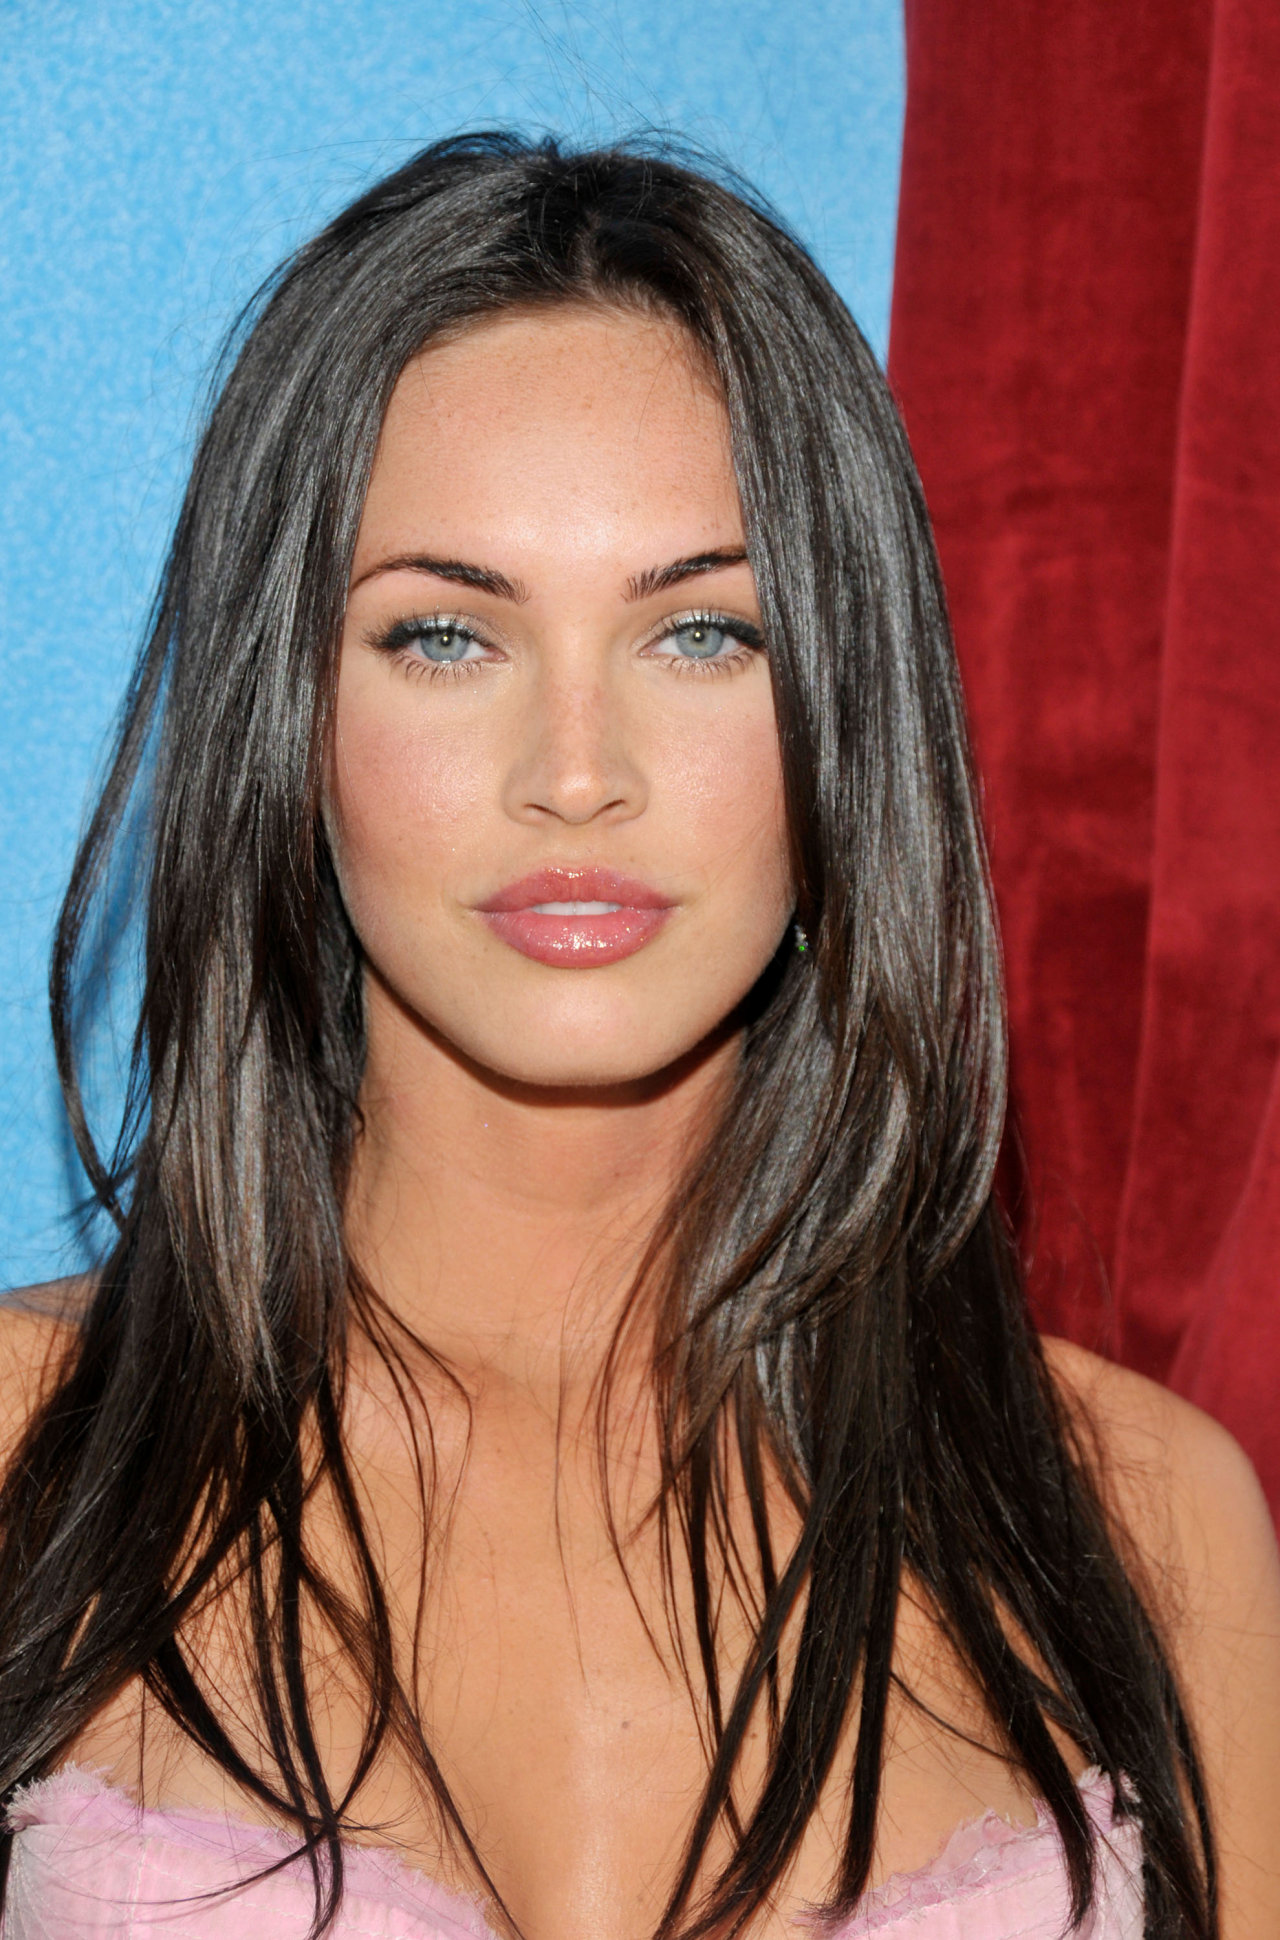 image - megan-fox-14 | tmntpedia | fandom poweredwikia